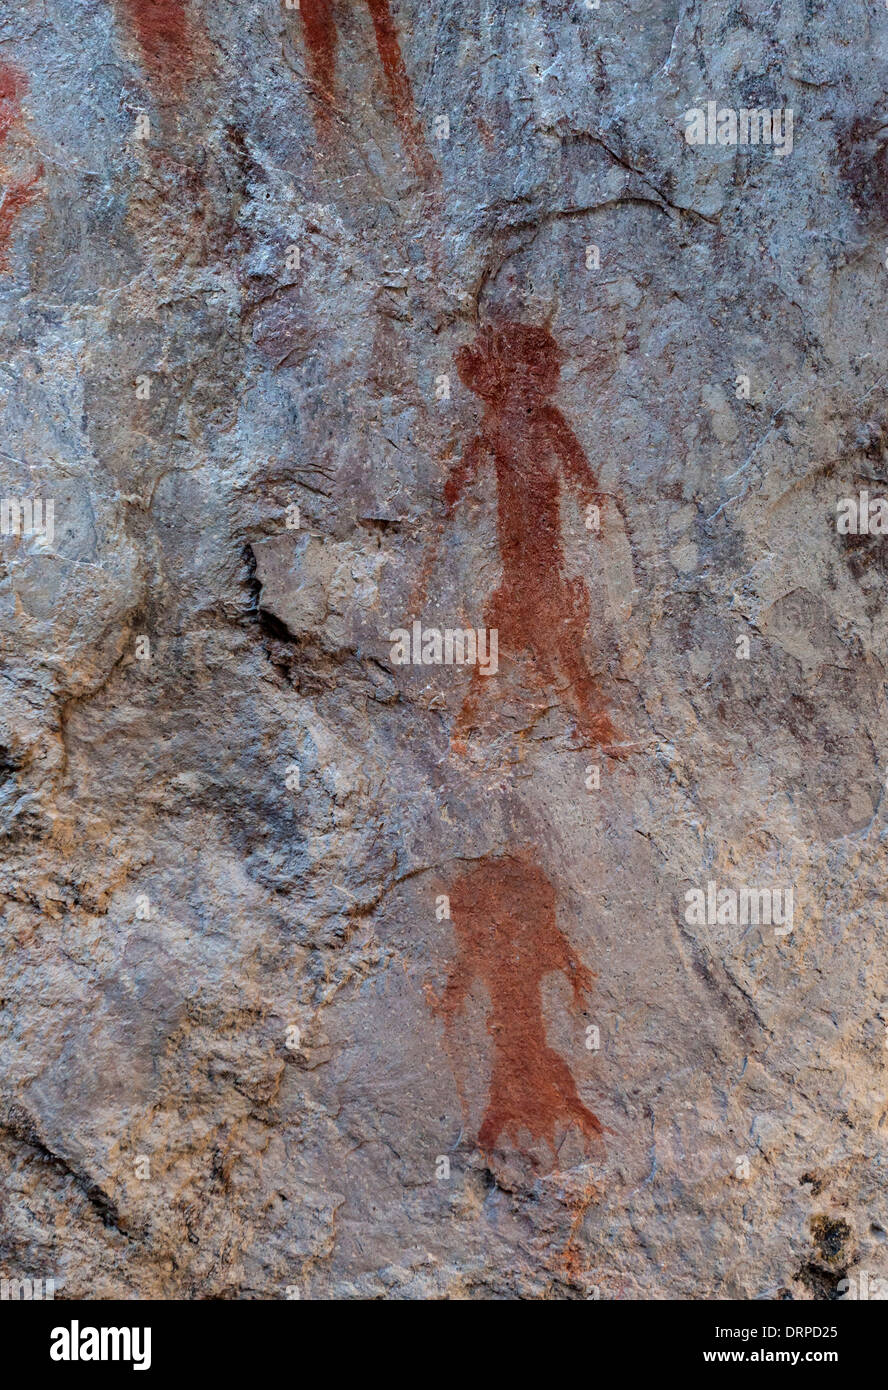 Ancient Indian red pictographs found in Portal Arizona. - Stock Image